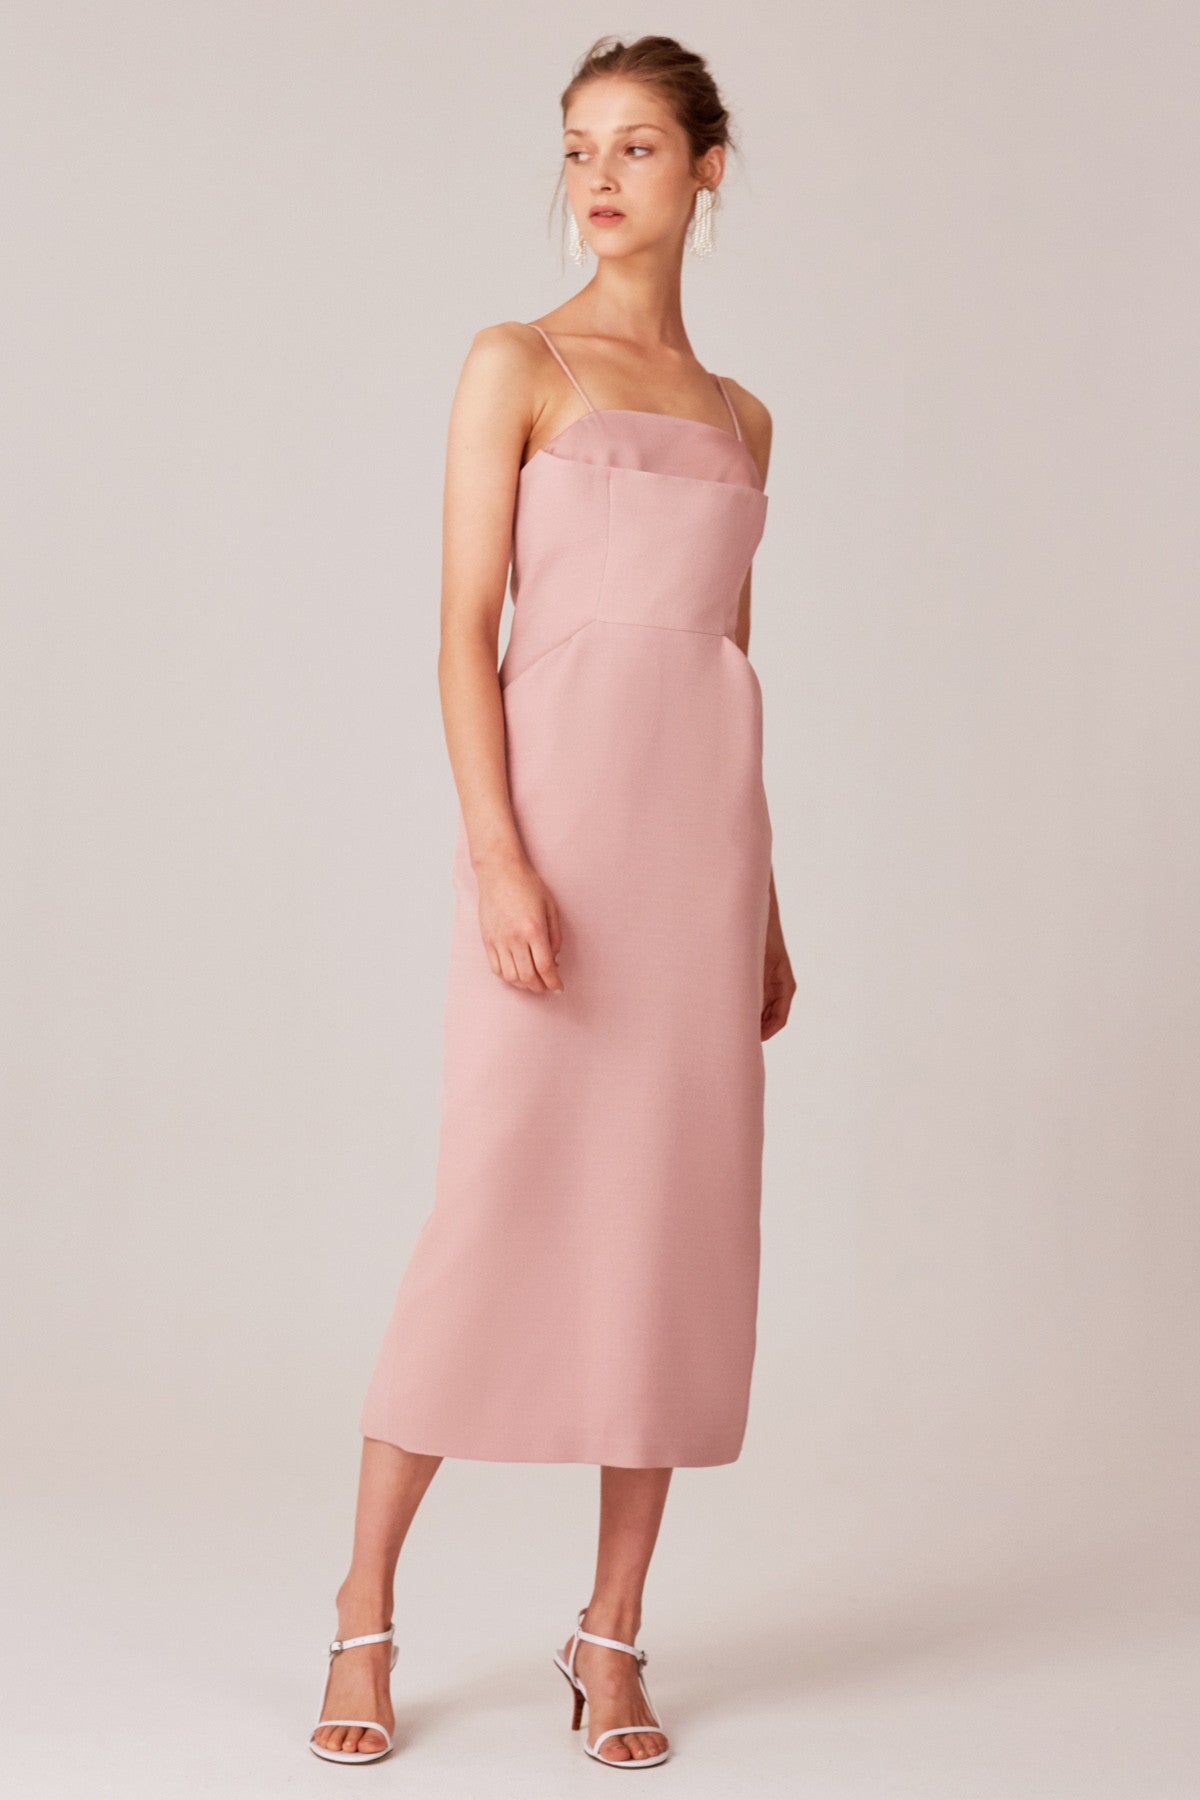 NEXT STEP DRESS dusty pink